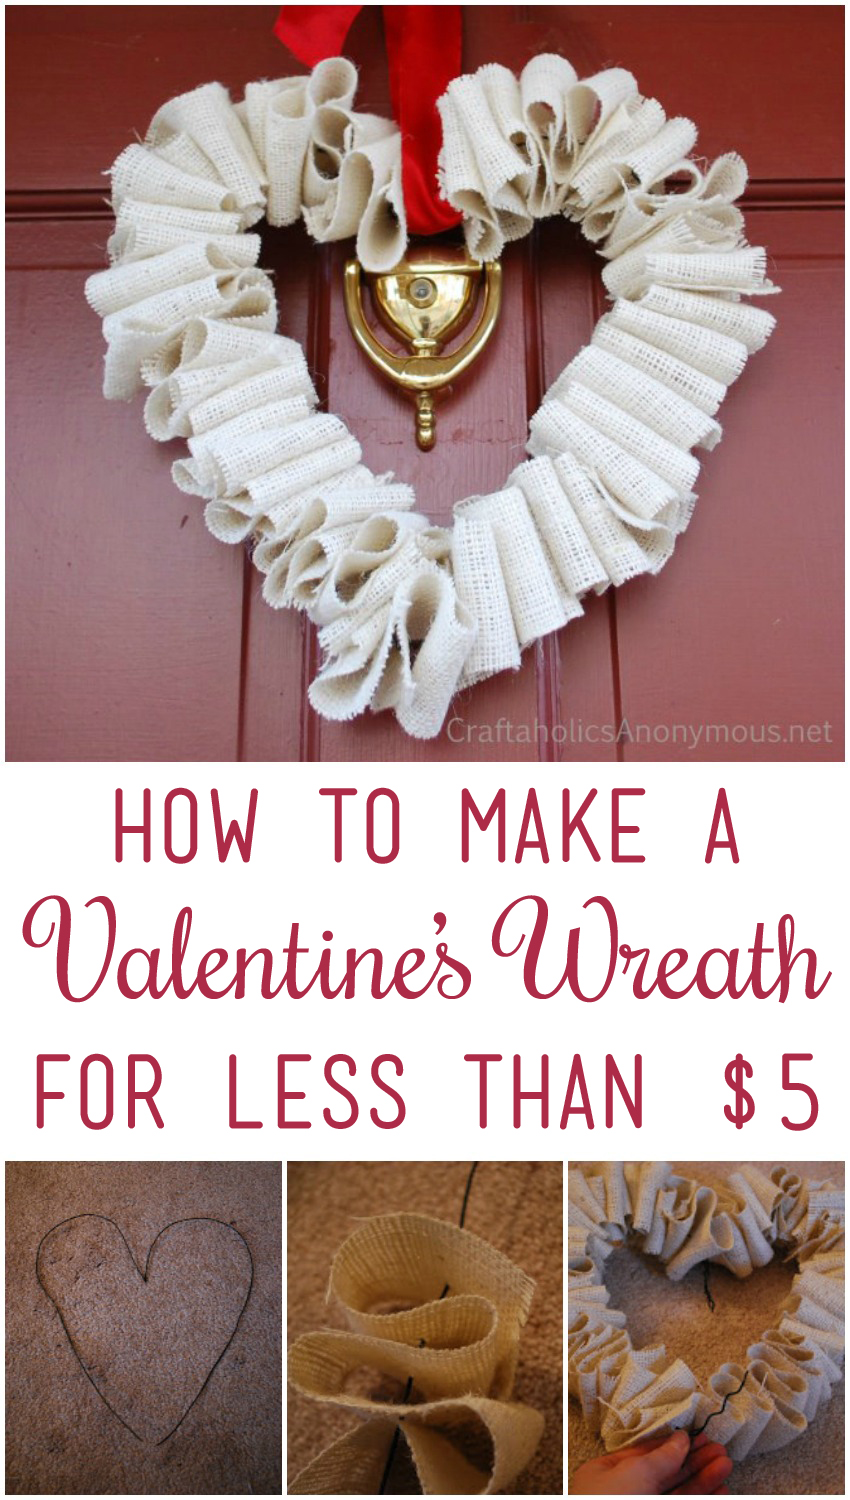 How to Make a Valentine's Wreath for Less than $5   Craftaholics Anonymous®